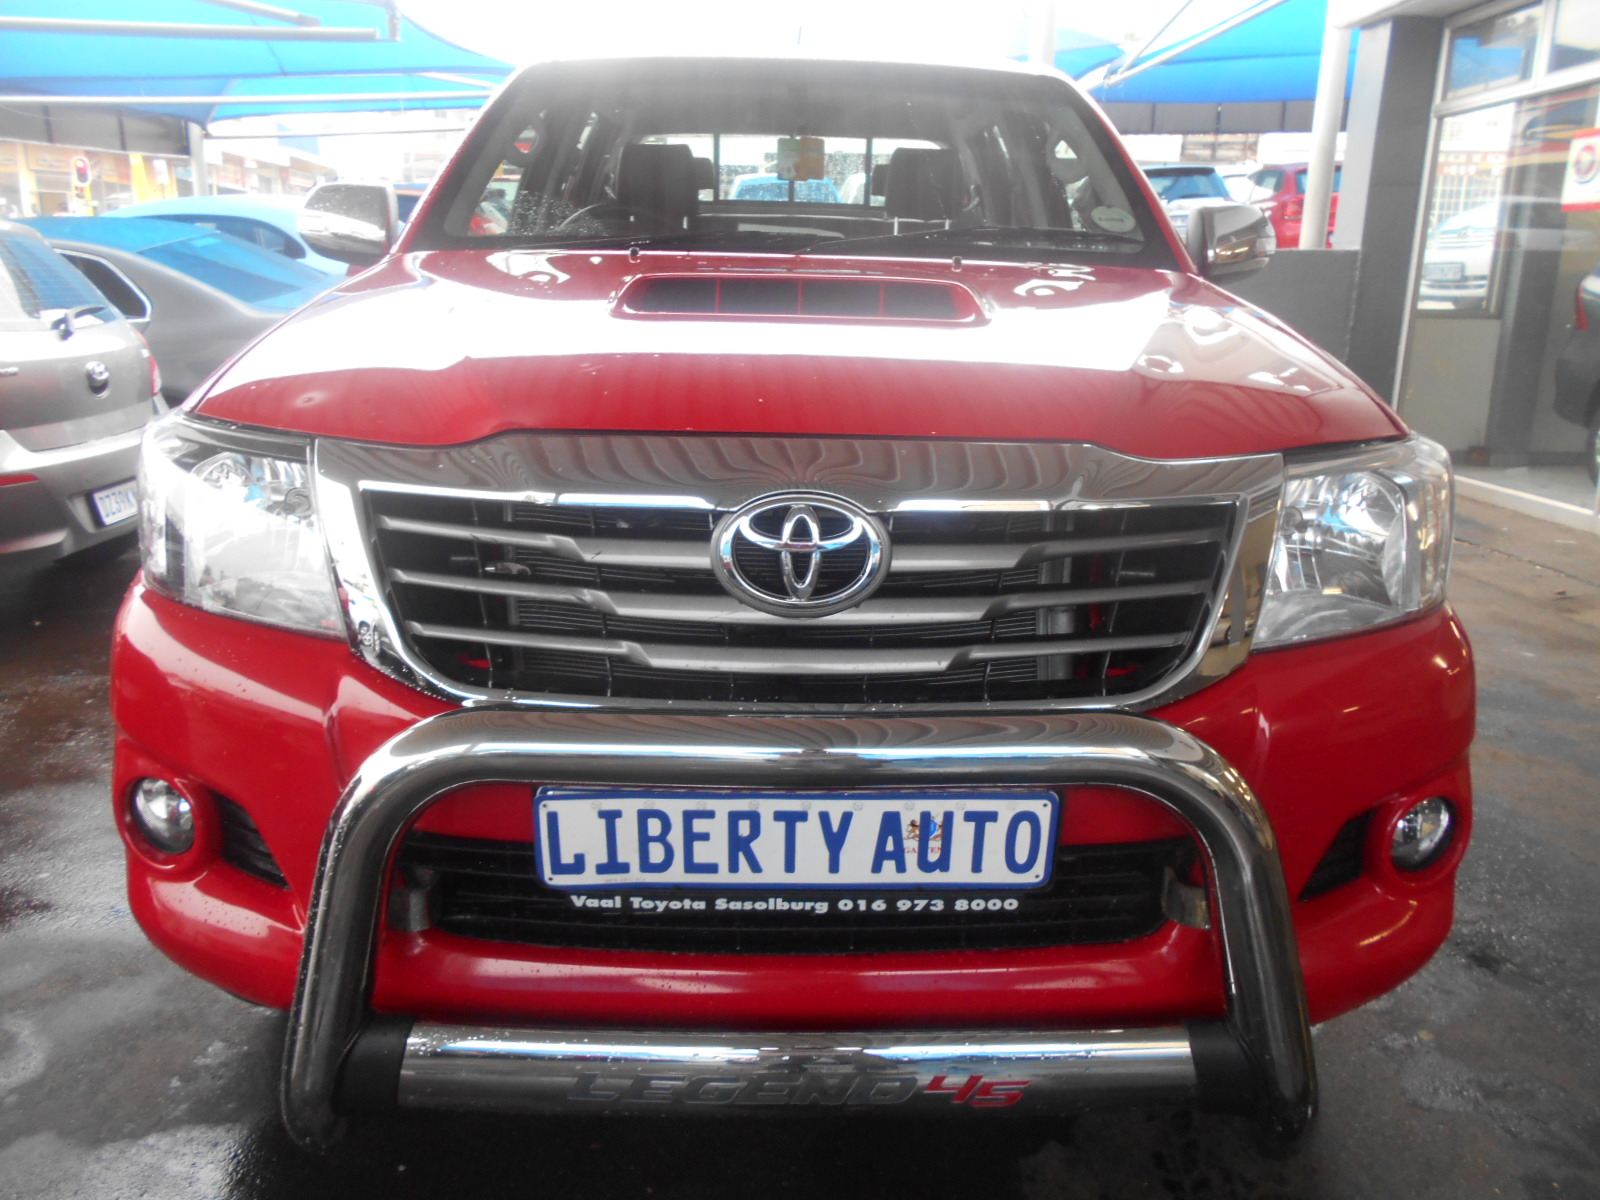 Cars for Sale In Gauteng Inspirational Liberty Auto Certified Used Cars for Sale Auto Deals Marketplaces